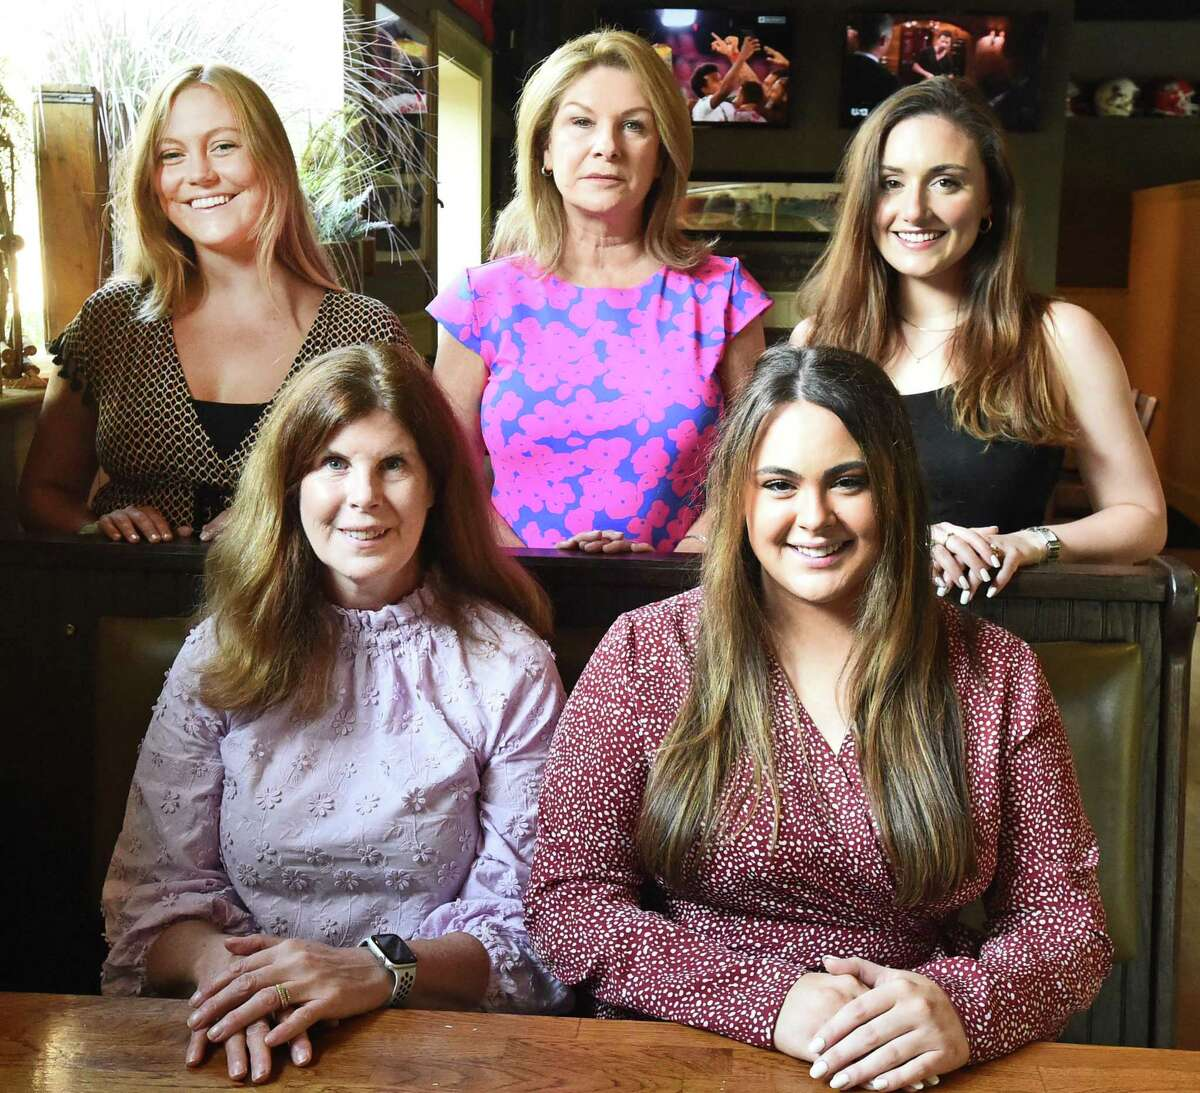 Lisa Deane, third from left, a Madison mother who founded DemandZero with the DemandZero committee of Fione Firene and Isabelle Firine both of New Haven, sitting, and standing, left to right, Tory Cornell of Madison, Lisa Deane and Kelsey Handelman of Madison on Friday, Aug. 20. The committee was instrumental in an effort to commission a New Haven architectural and design company to craft a sculpture in Hartford that will include the signatures of 79 people from CT, with room to add more signatures, who have died due to an overdose of opioids. The purpose of the sculpture is to remind people that the opioid epidemic rages on, and to put pressure on legislators to pass critical laws that address the epidemic.